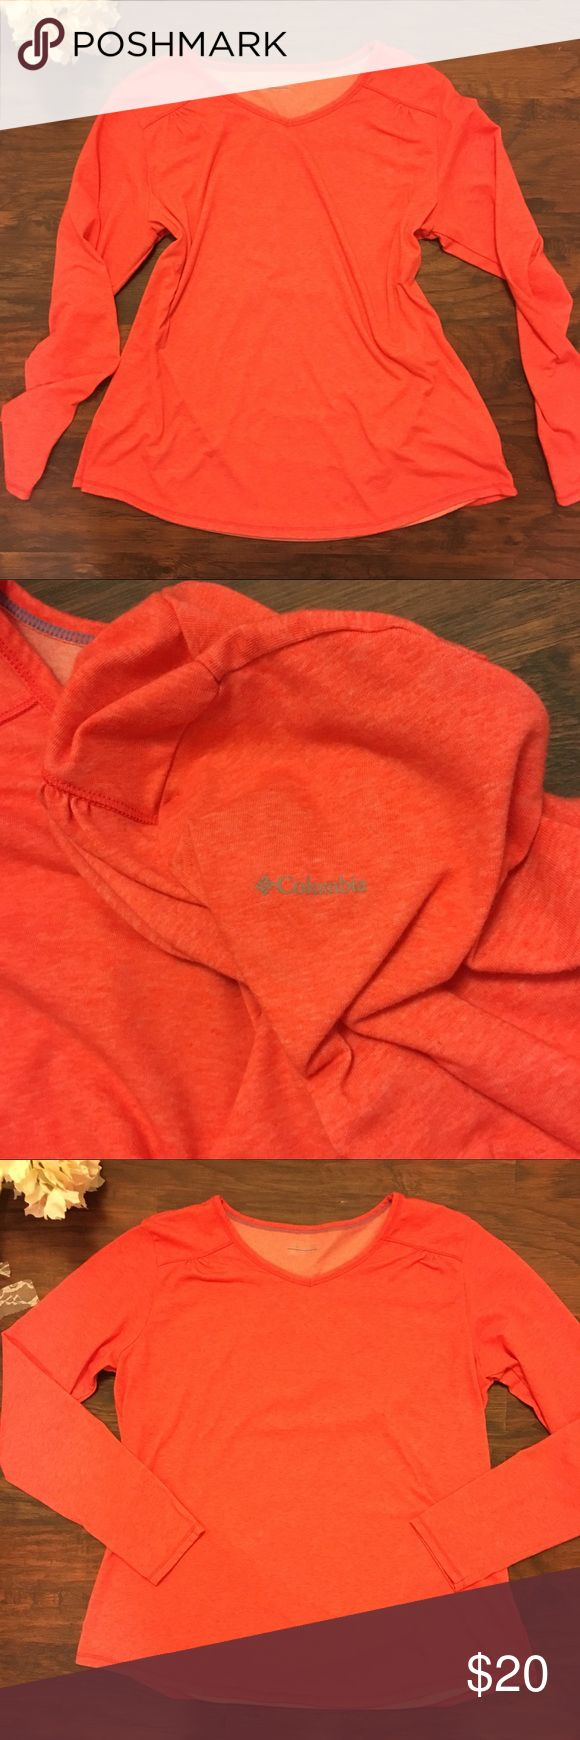 NWOT COLUMBIA Soft Pullover Sweatshirt V Neck XL Columbia Sportswear - Size XL Ladies - Super Soft Cotton Poly Blend Lightweight Pullover Sweatshirt - V Neck - Logo on Shoulder - Heathered Melon Orange Color Columbia Tops Sweatshirts & Hoodies